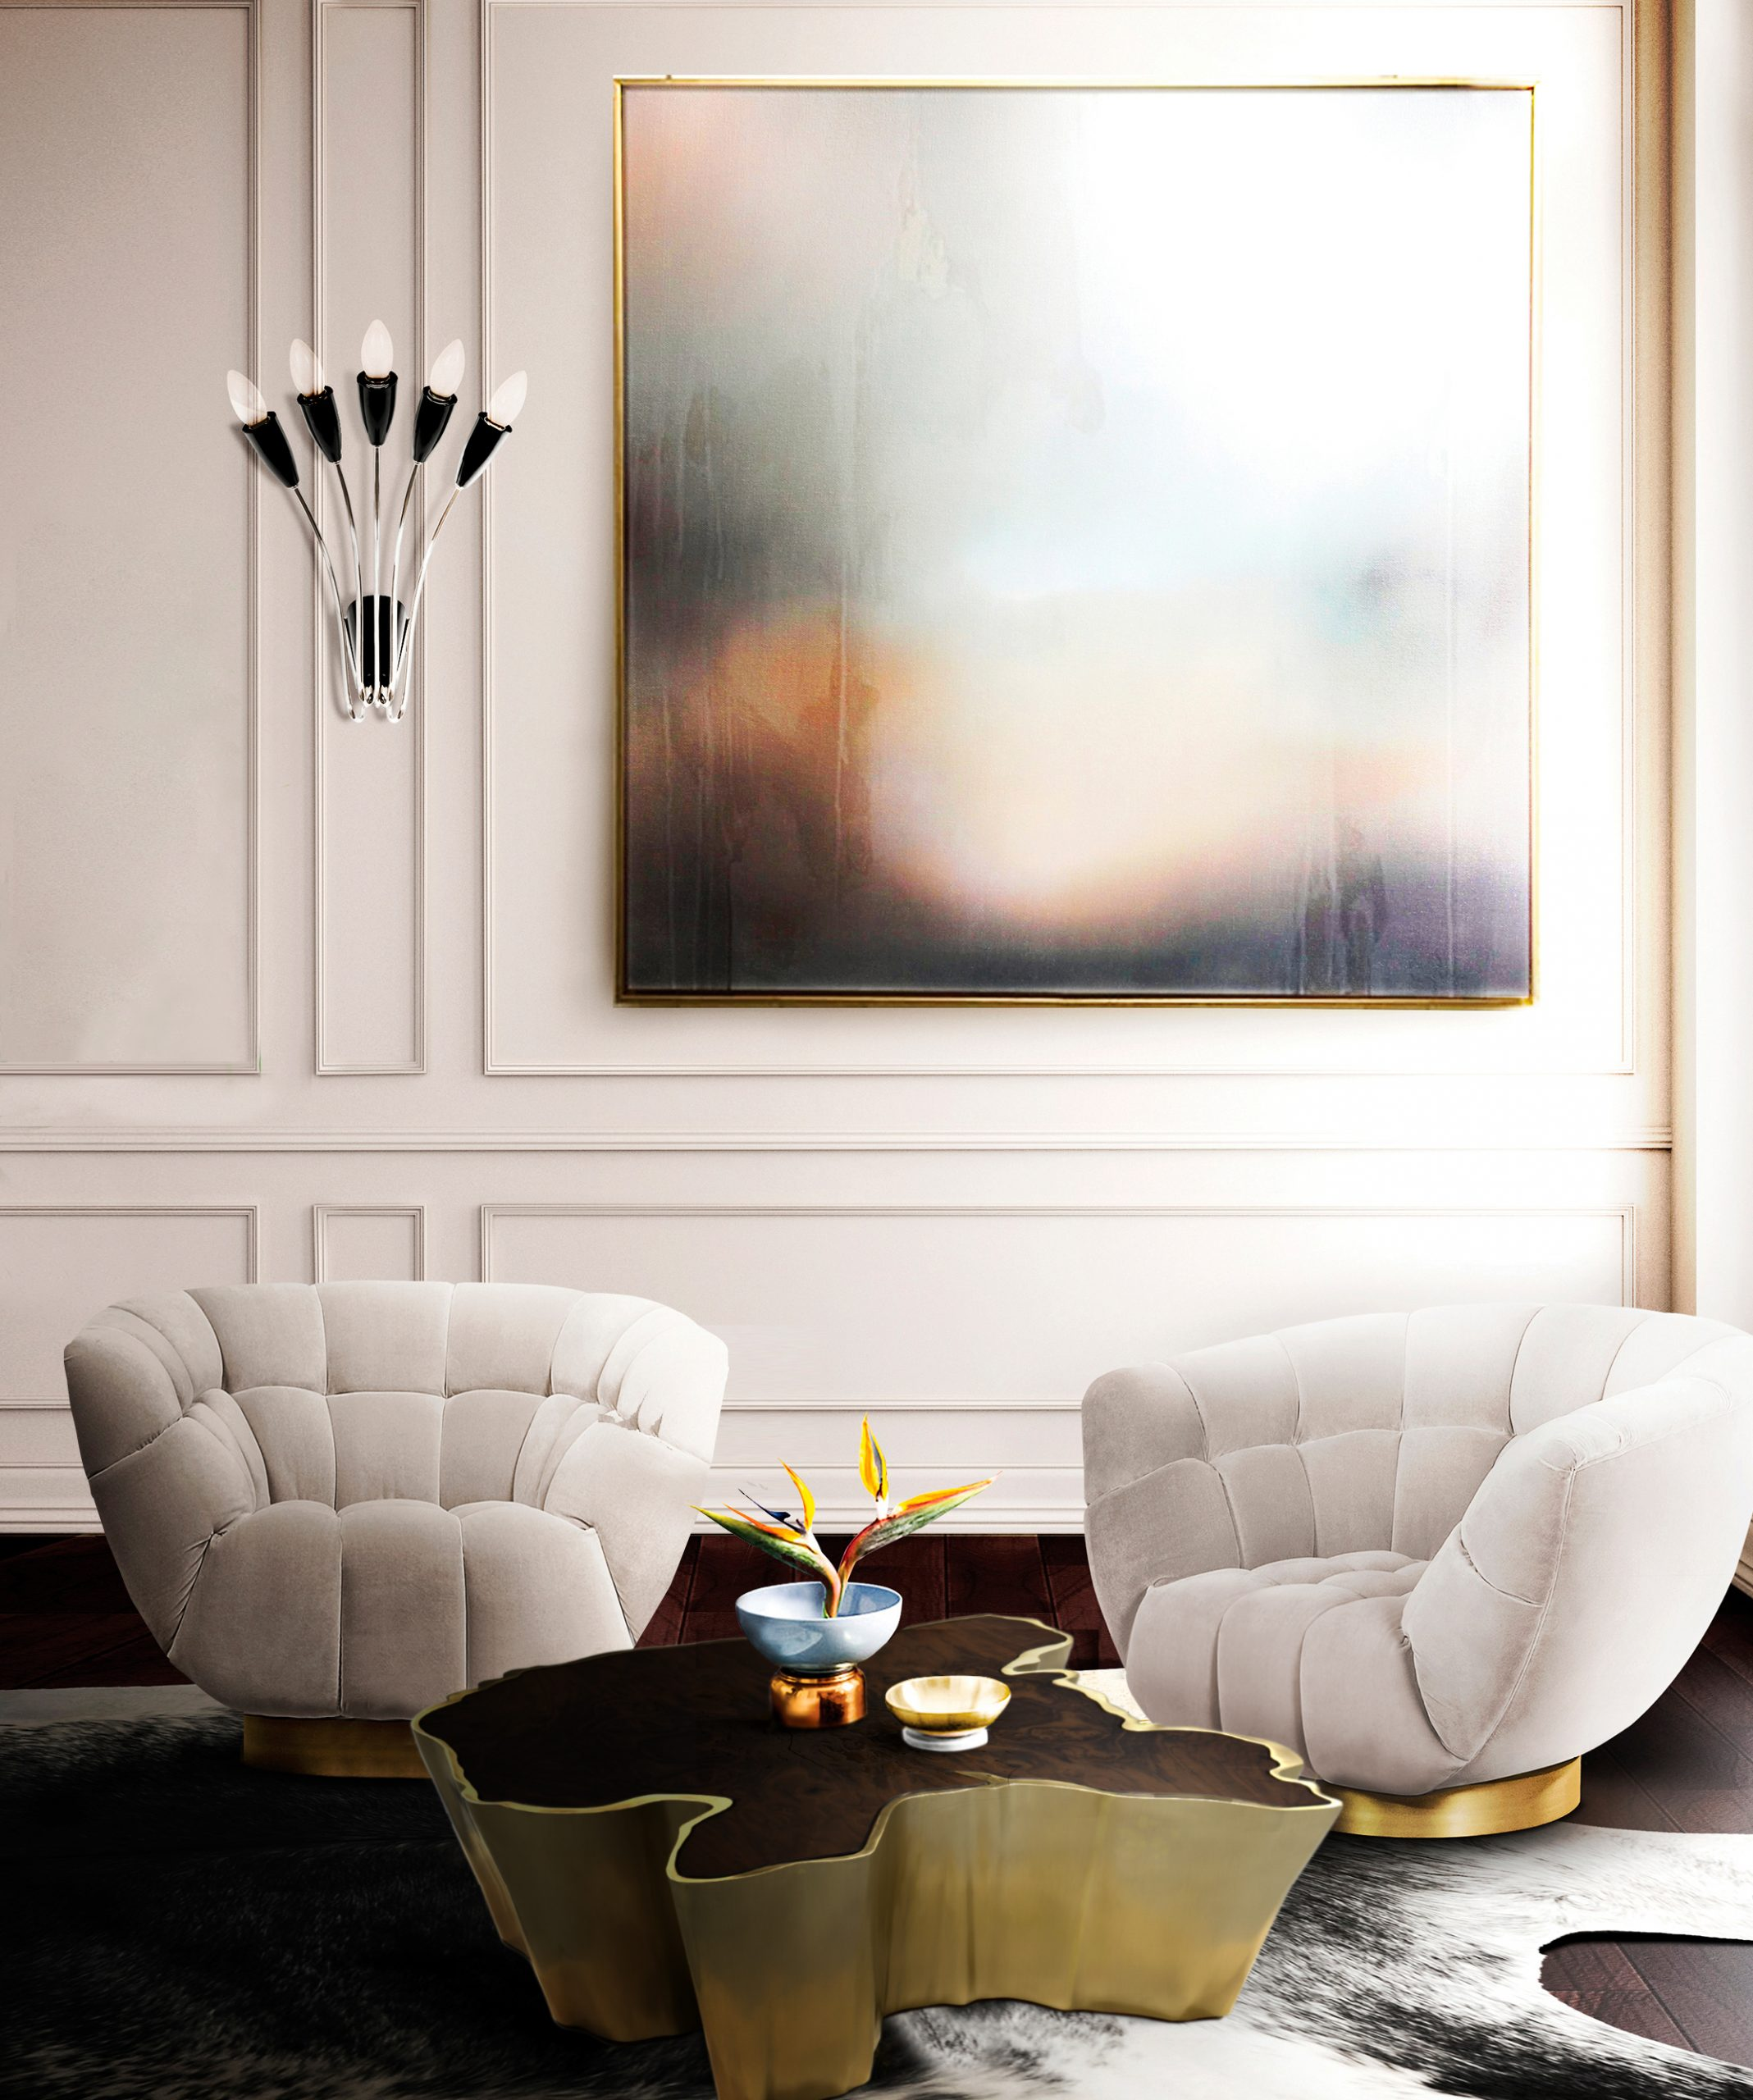 Accent Chairs: Tips On How To Choose A Chair To Make a Statement accent chairs Accent Chairs: Tips On How To Choose A Chair To Make a Statement BB essex armchair sequoia center table scaled